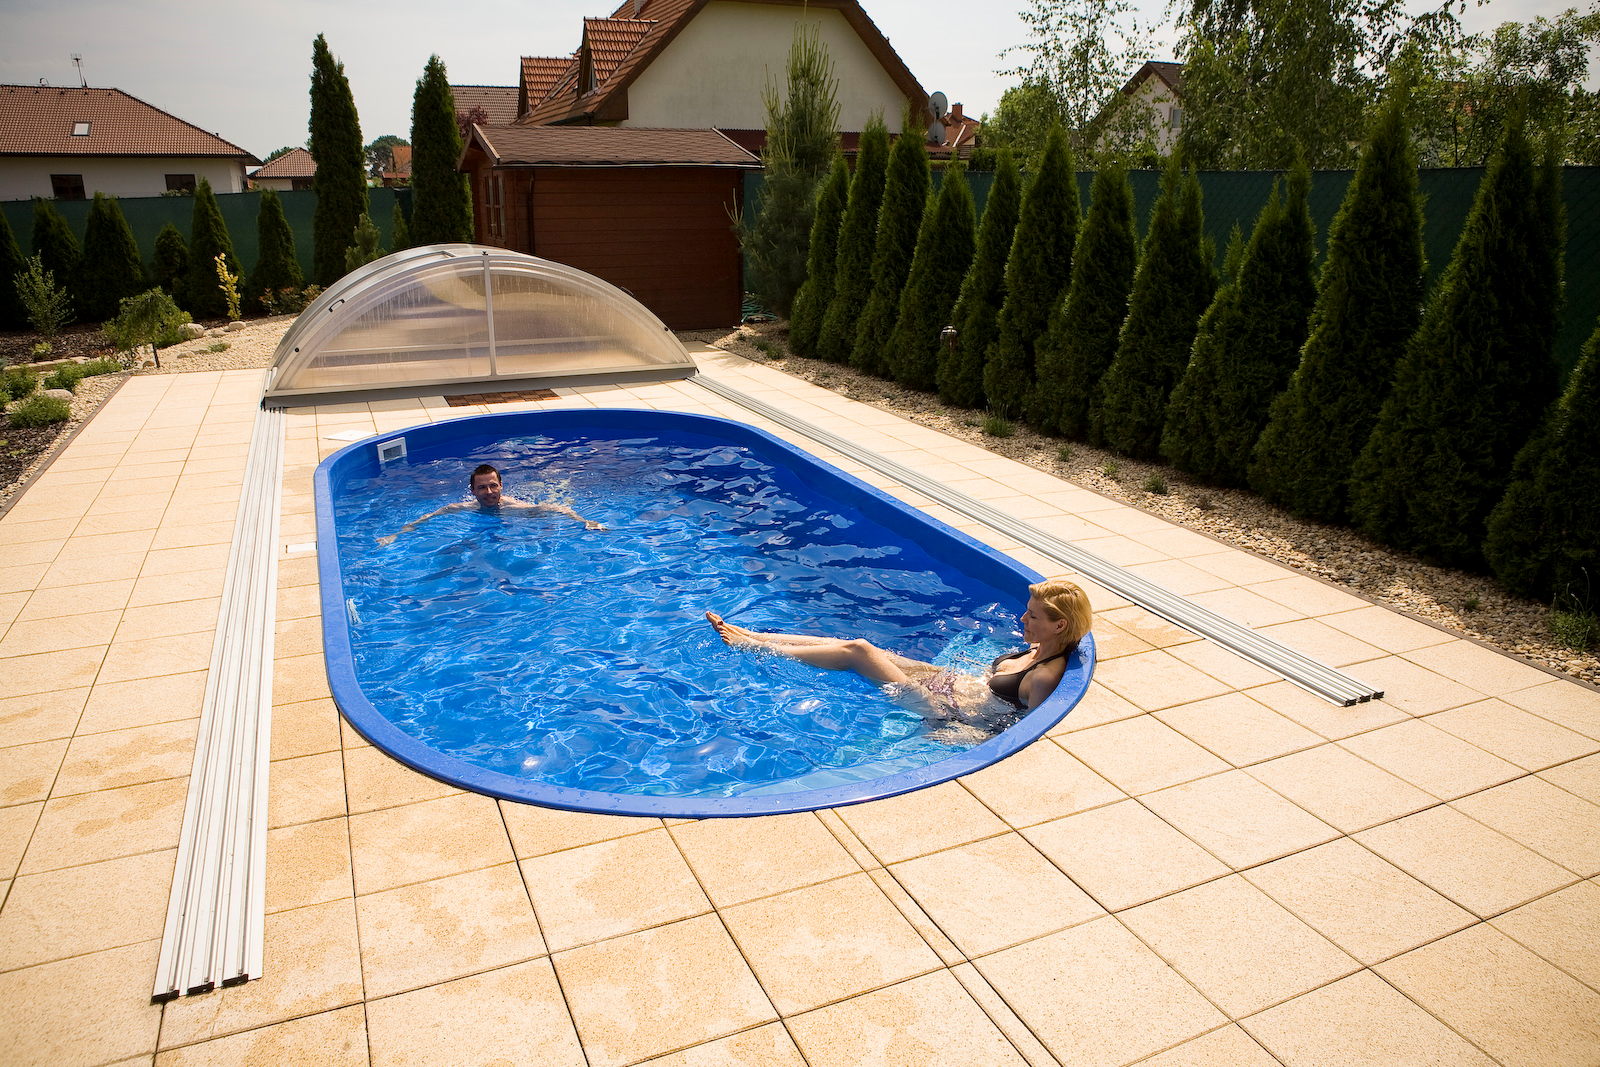 Gfk Pool Komplettset Oval Gfk Pool Backyard Plunge Pool Ideas In 2019 Schwimmbecken